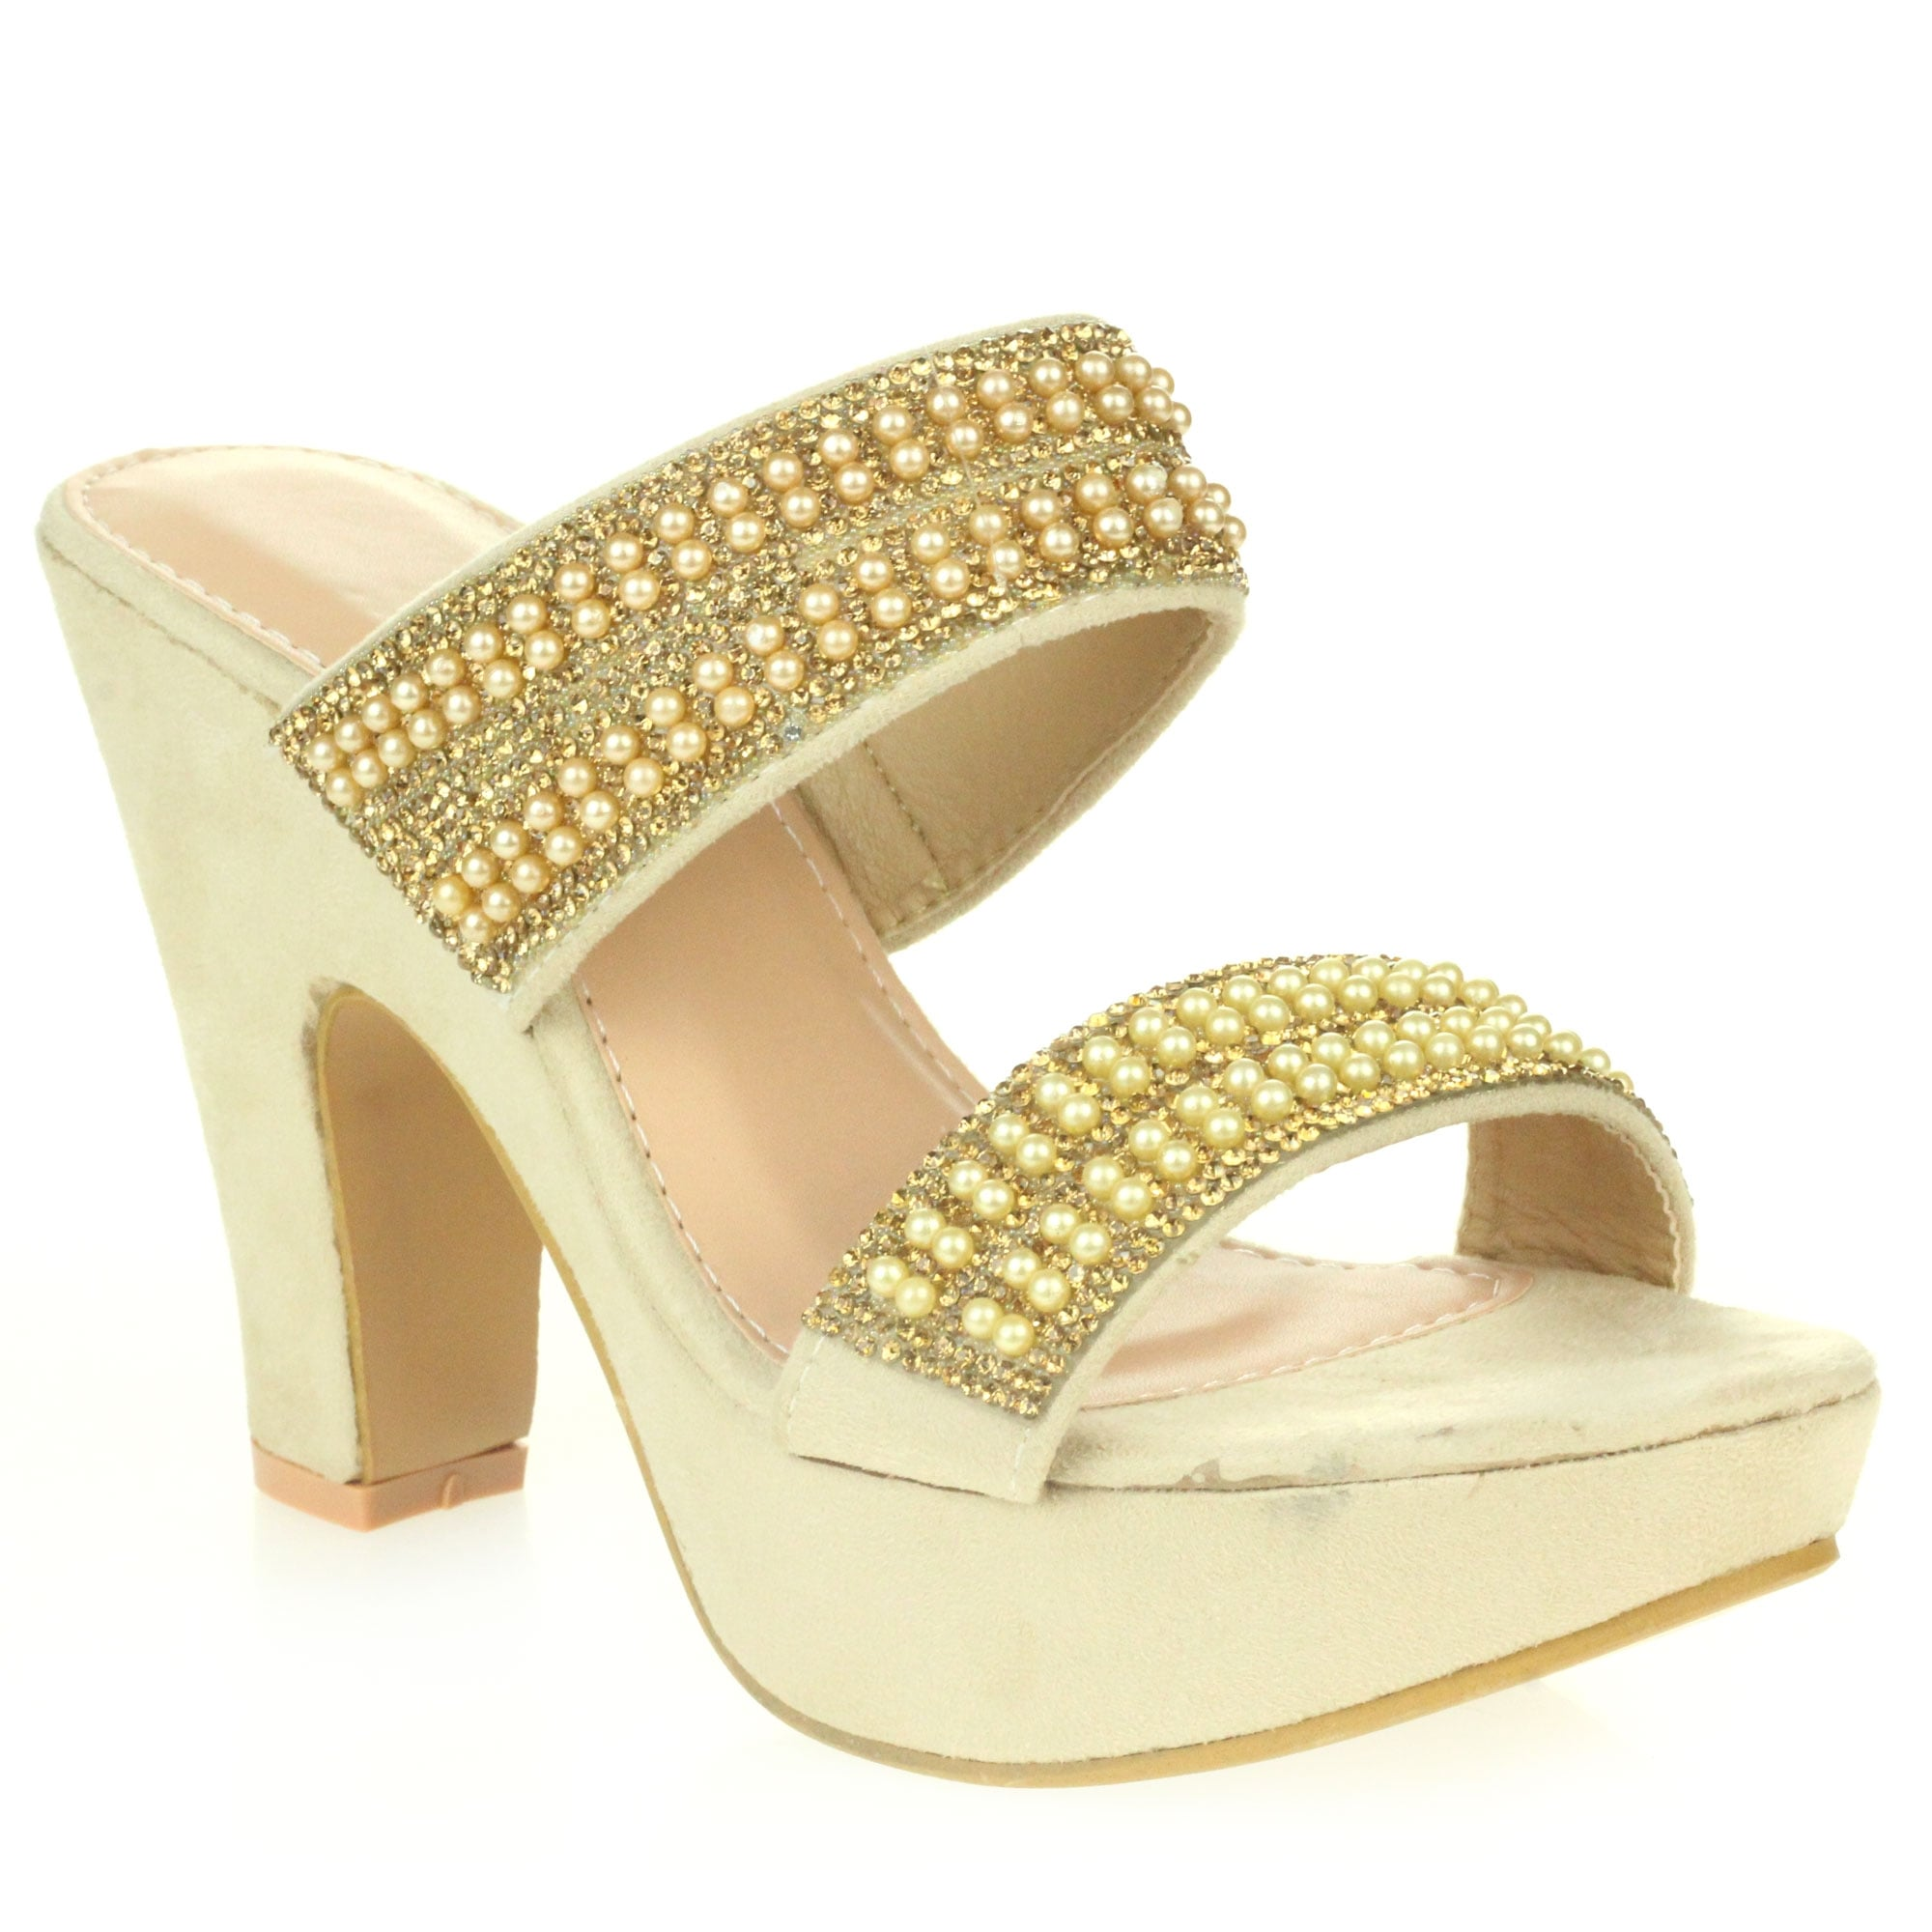 d10ae5aa8a Aarz London Charity- Party Open-toe Sandal